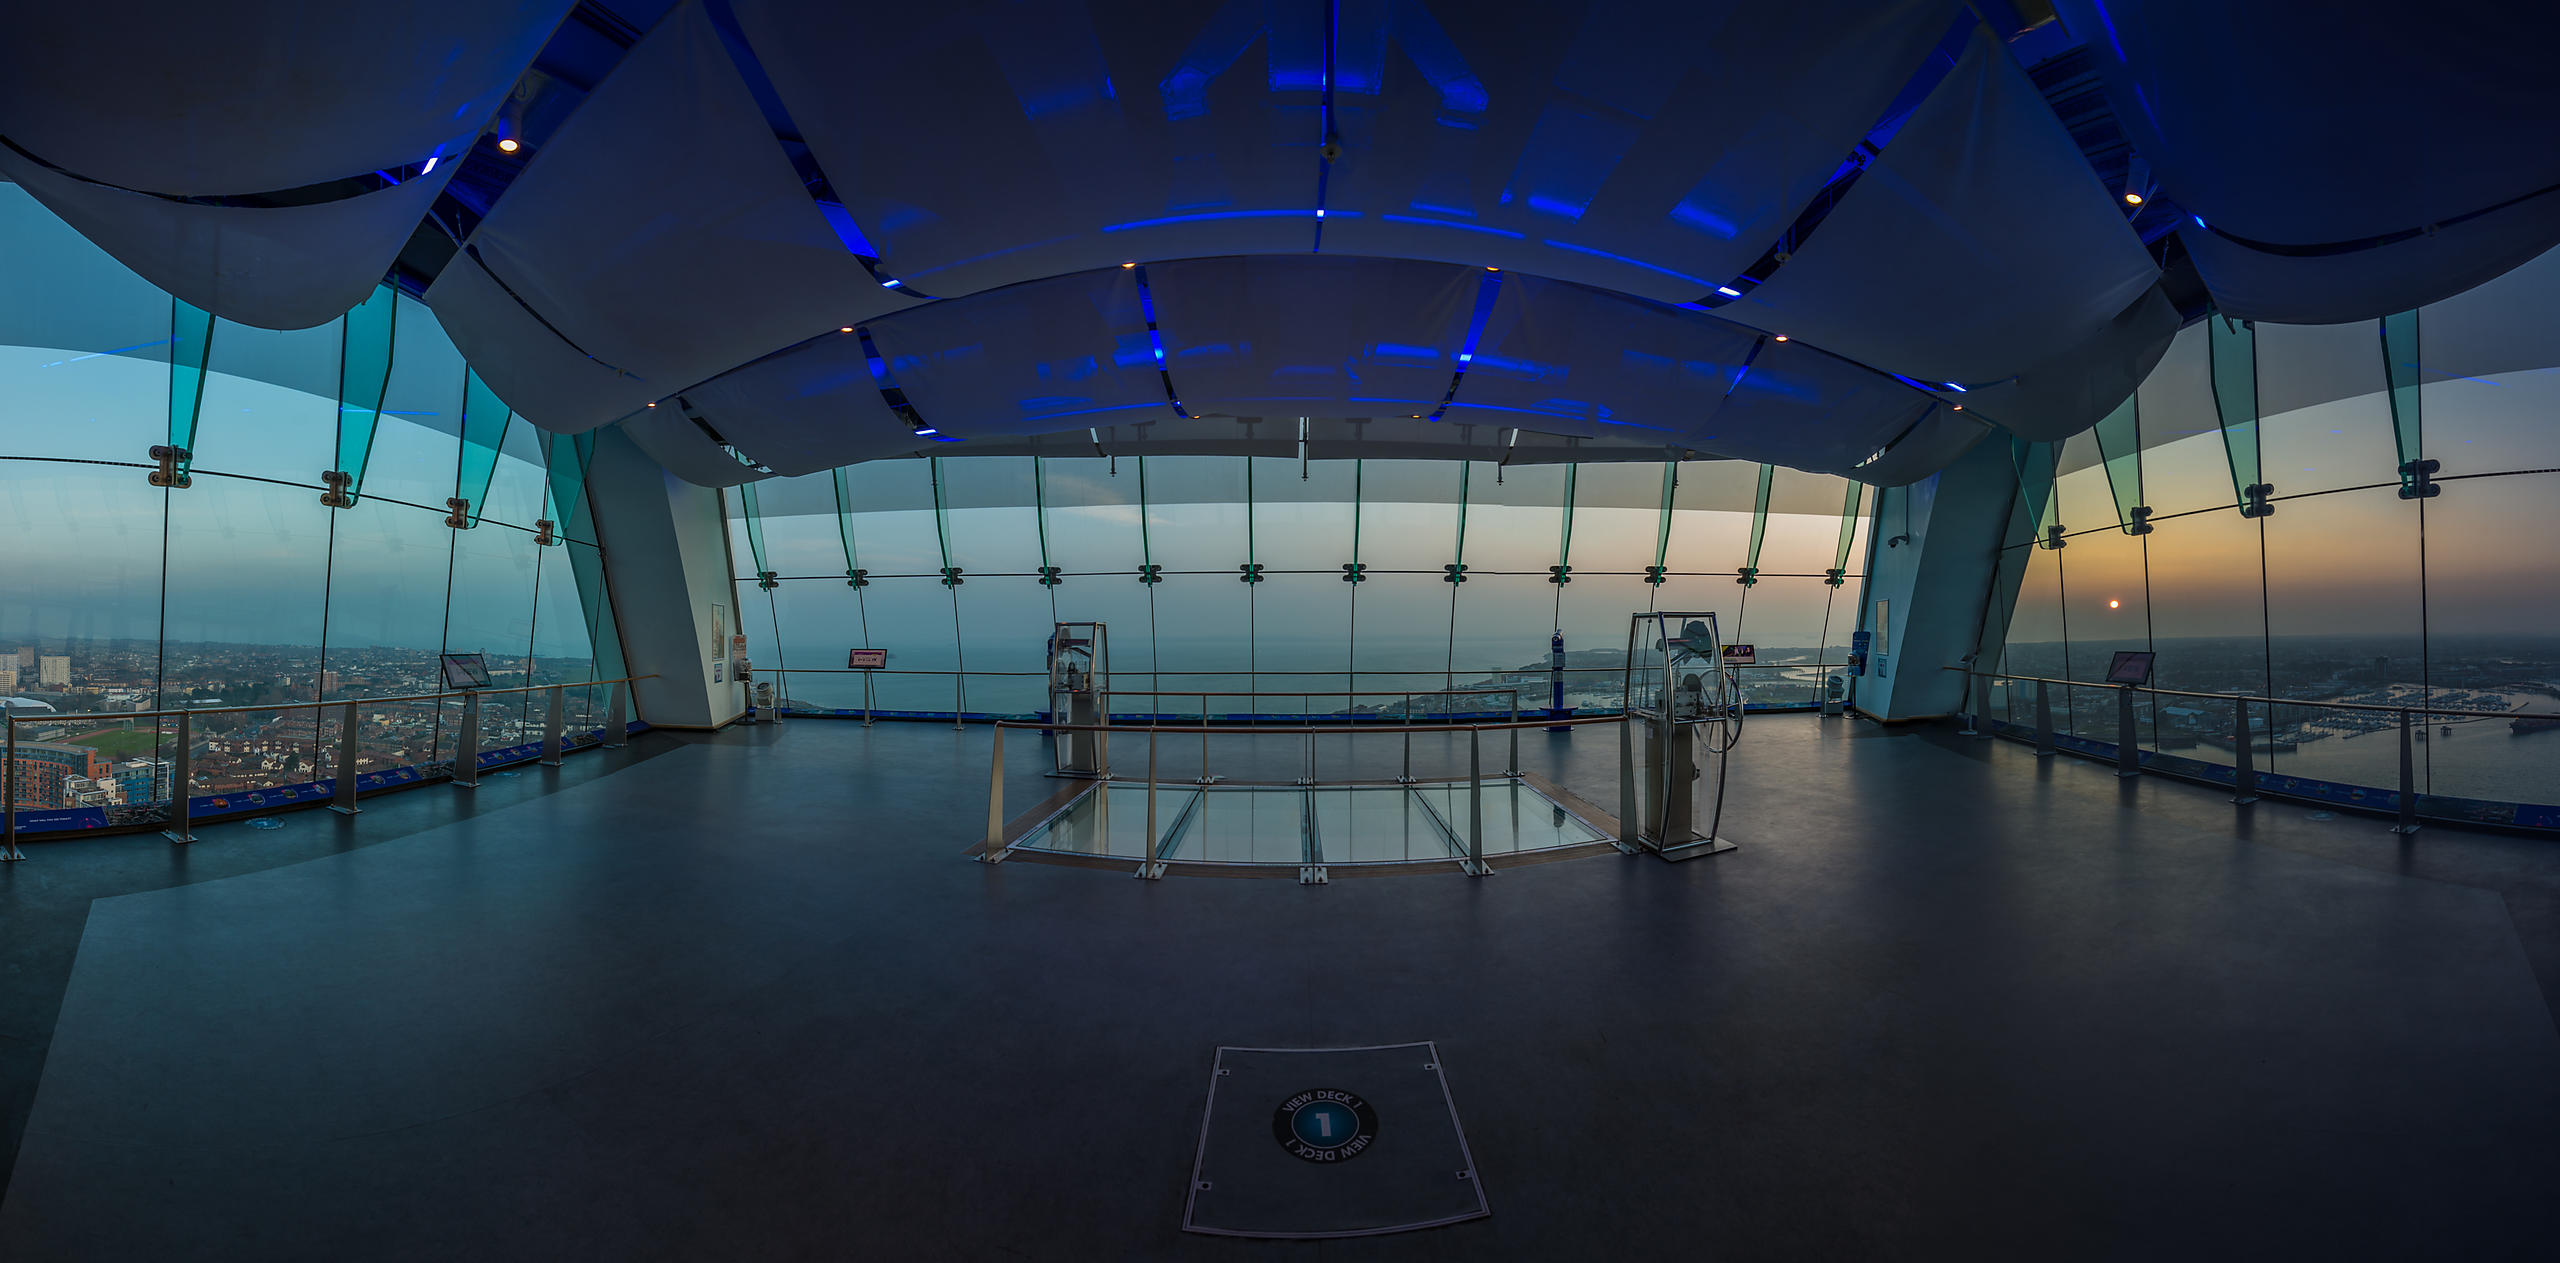 Panoramic View of the Spinnaker Tower View Deck One at Sunset